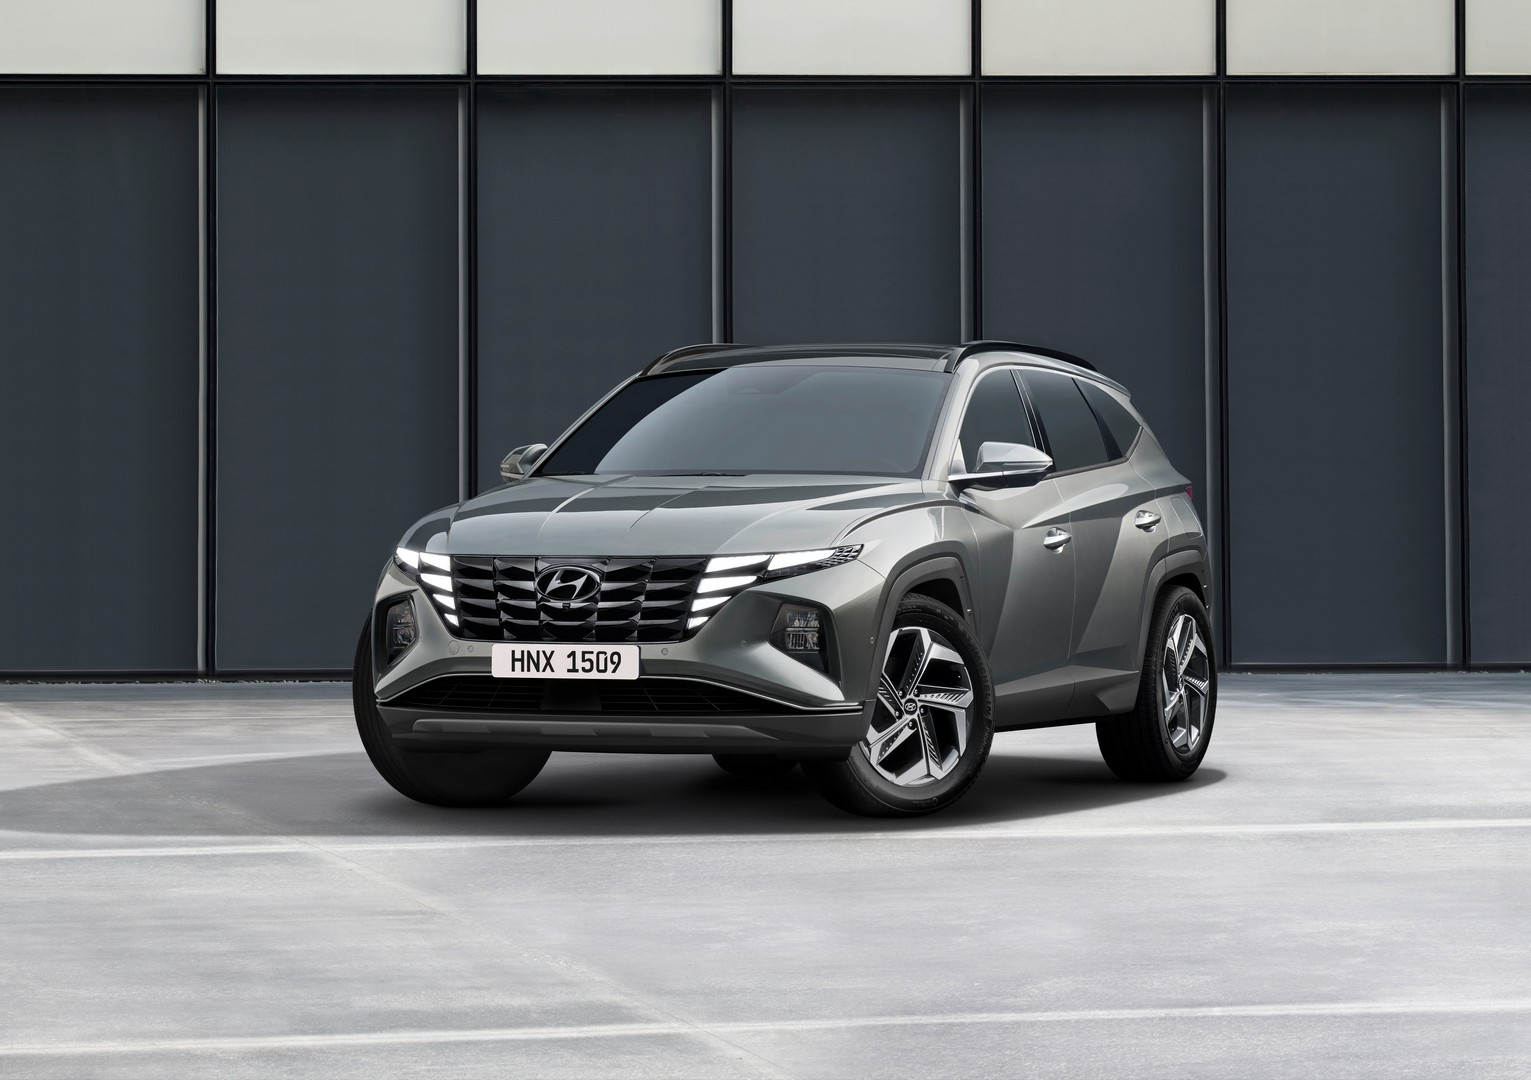 2021 hyundai tucson arrives as hotdesigned techladen